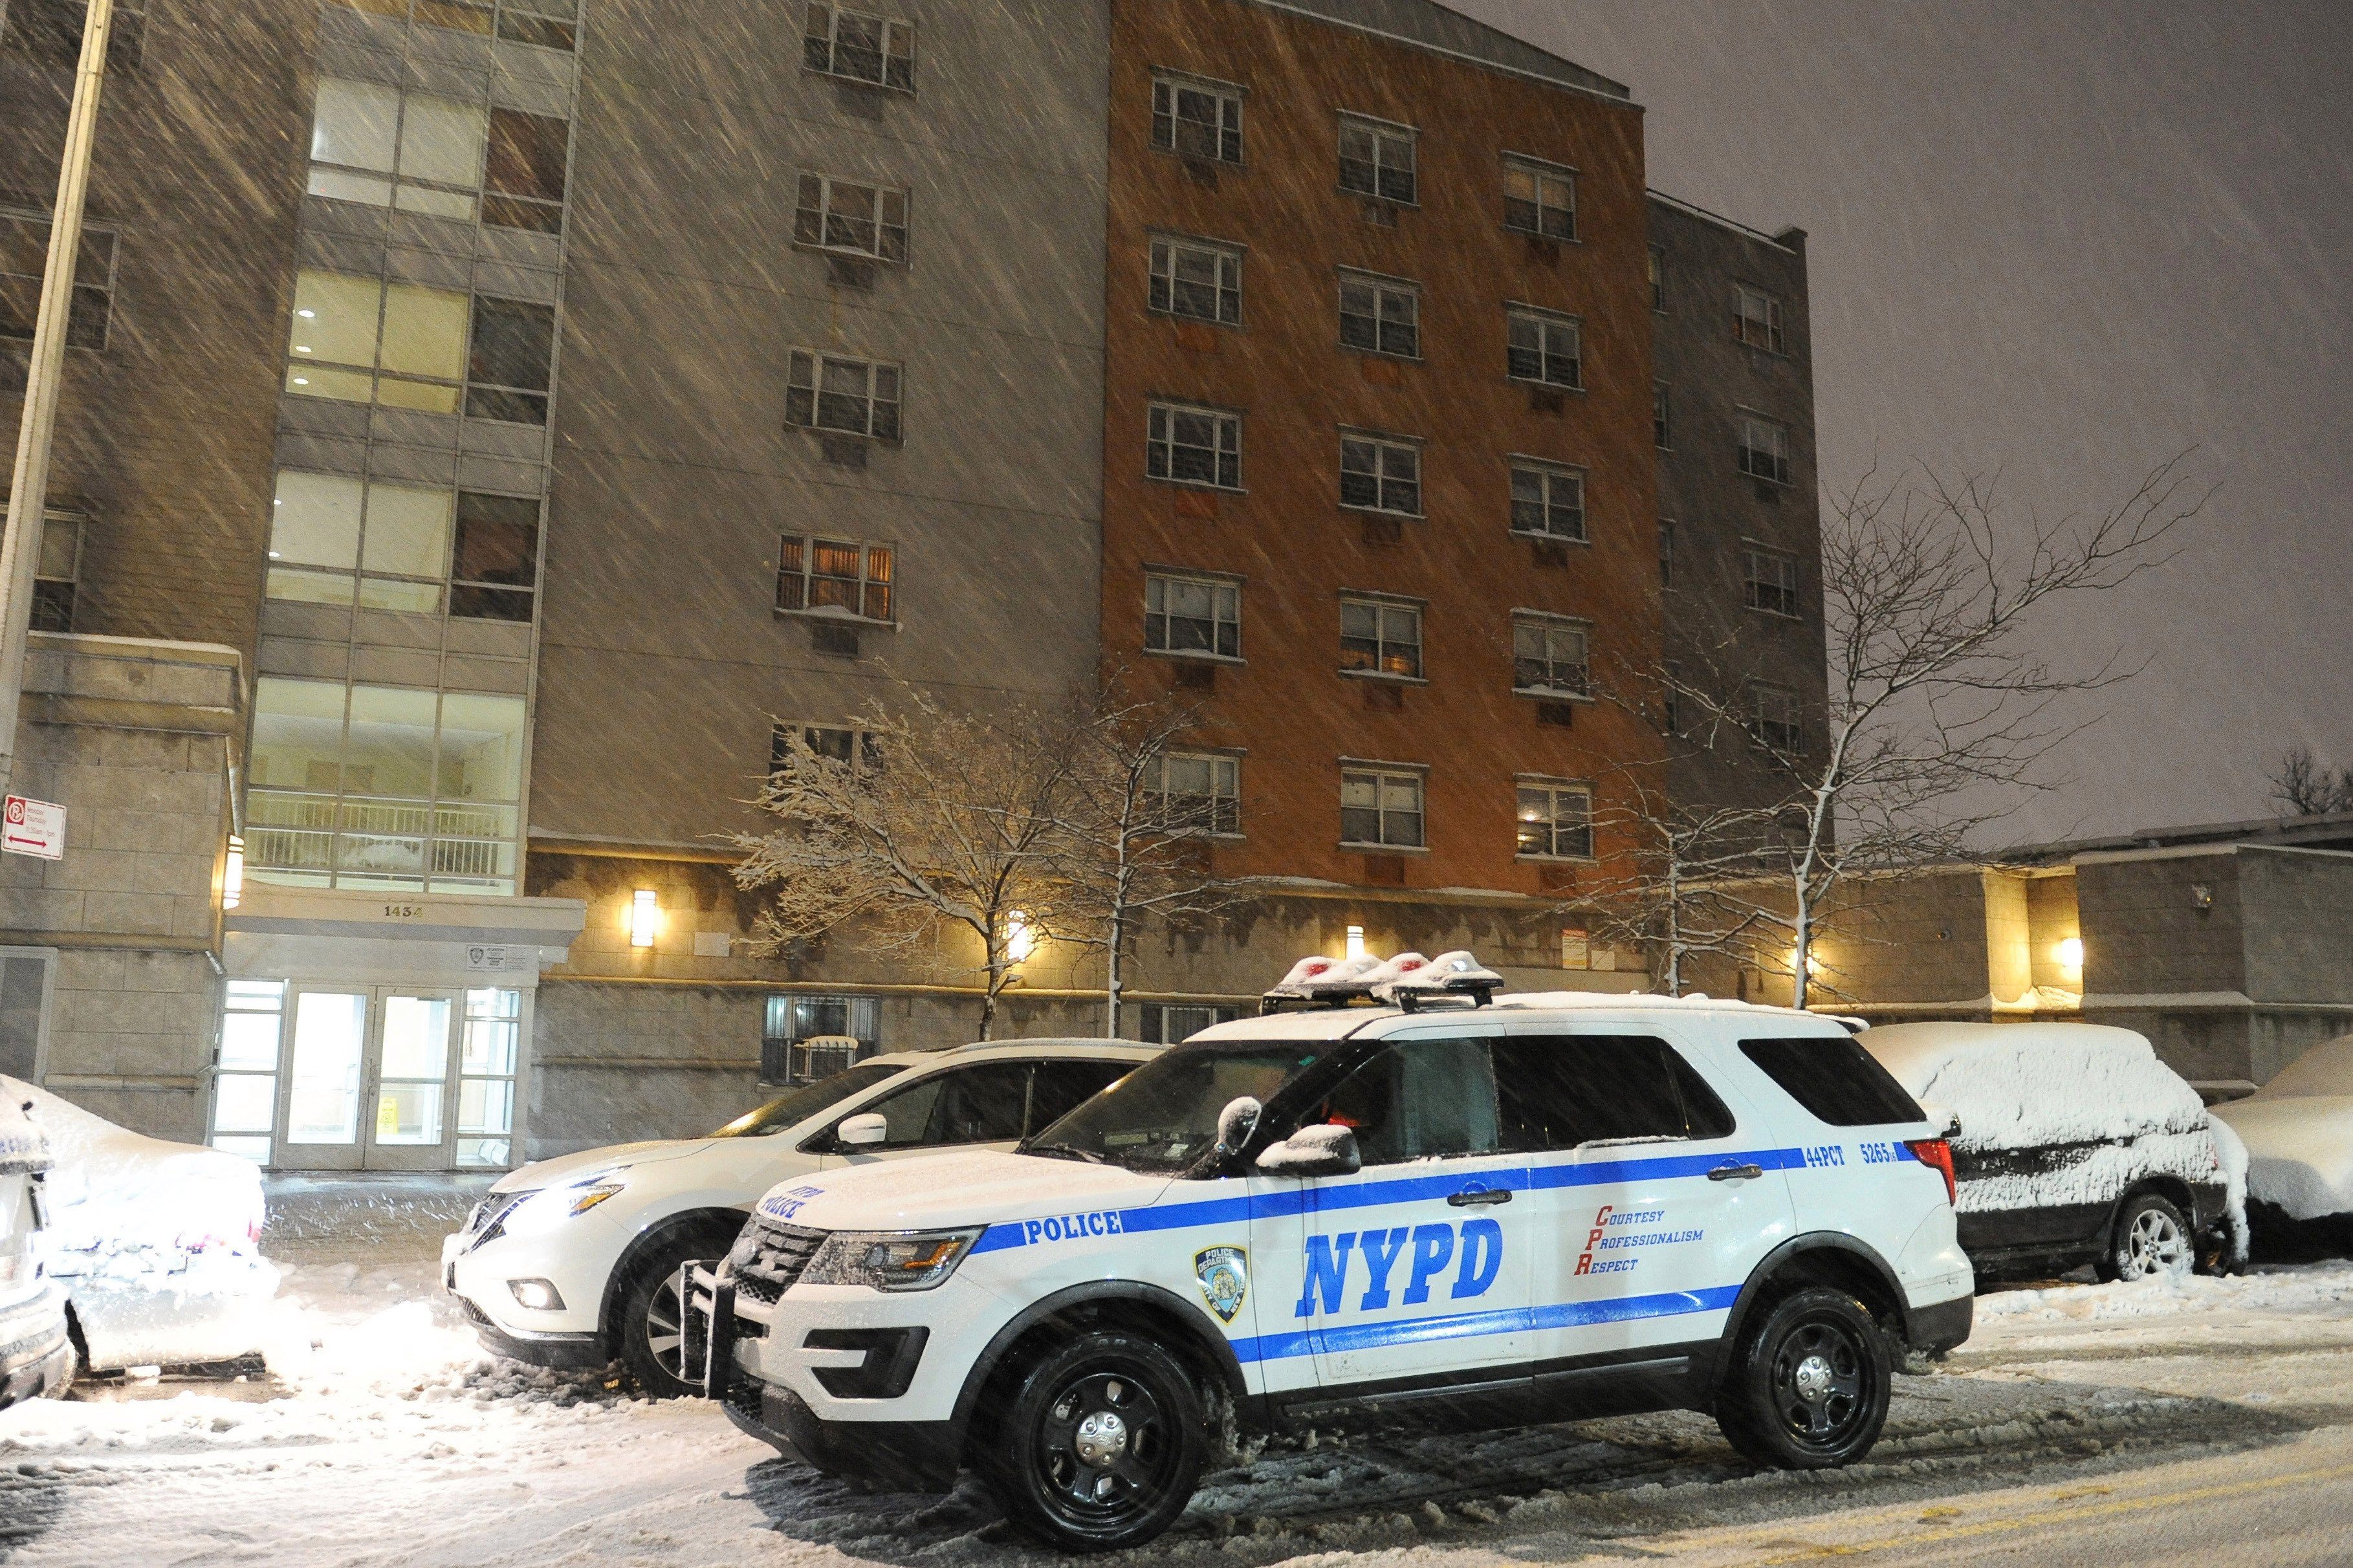 Off-duty corrections officer fatally shoots girlfriend in The Bronx